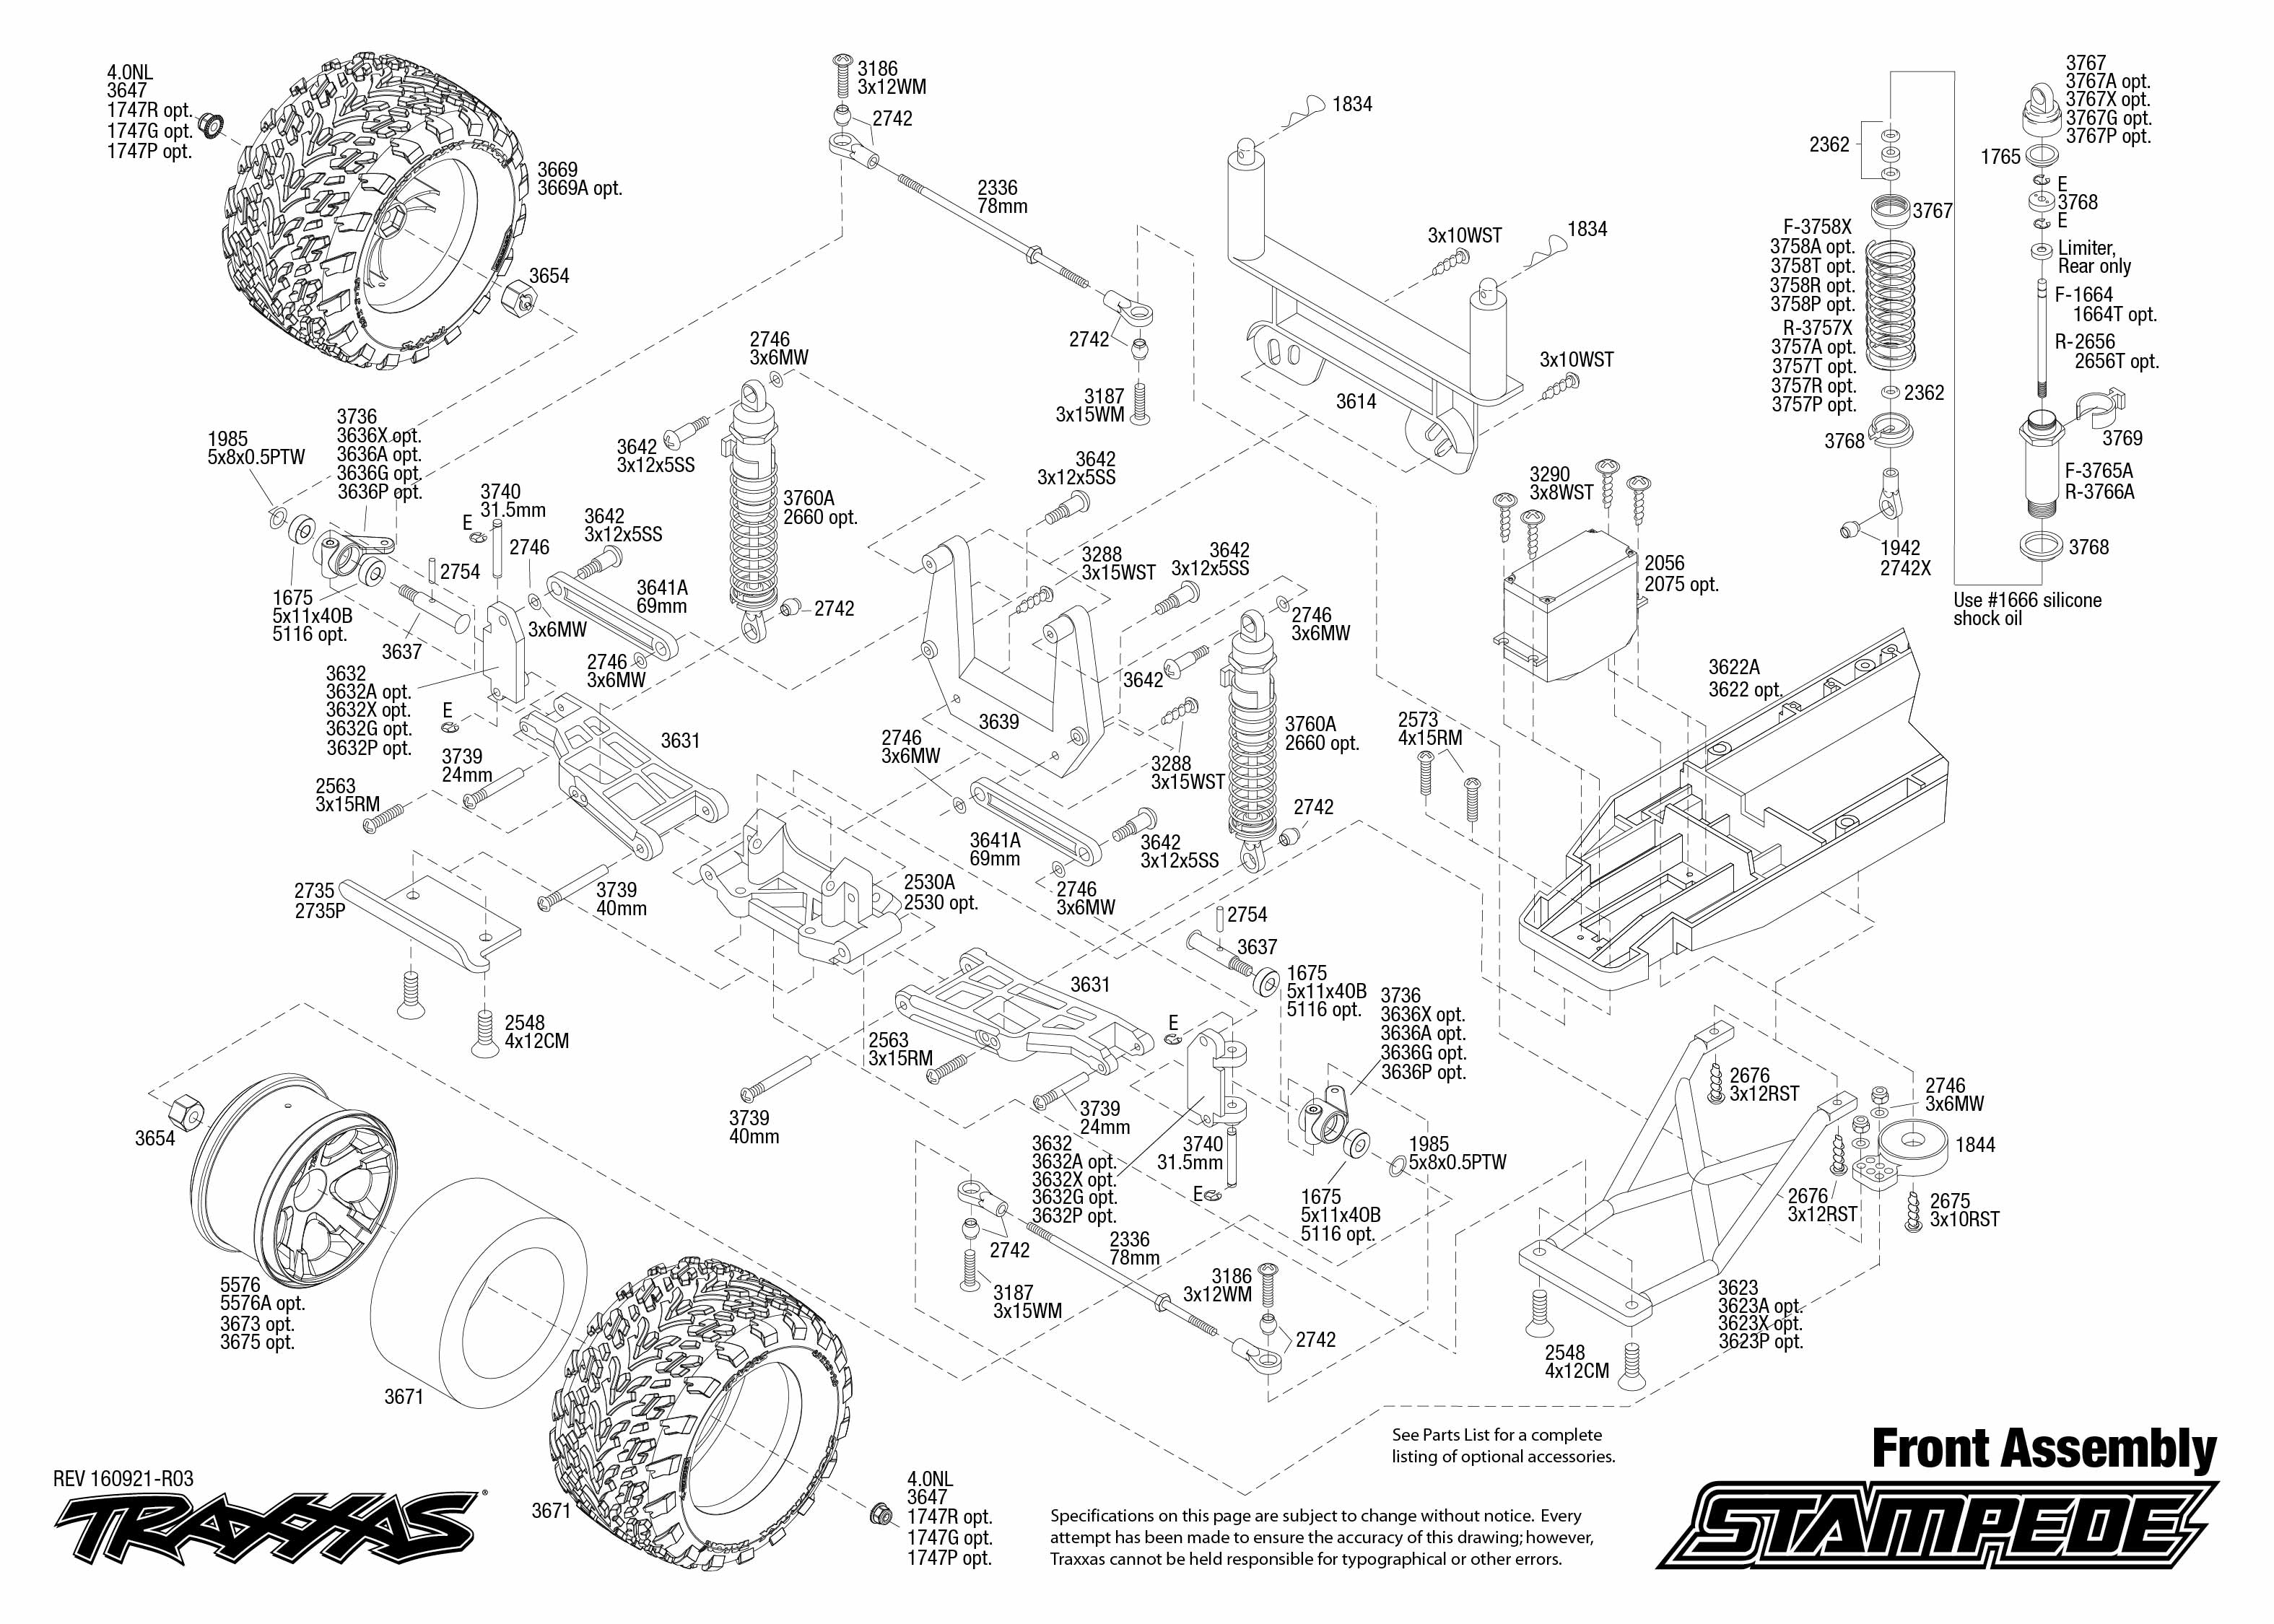 T Maxx 3 Parts Diagram 24 Wiring Images Traxxas Bouwtekening Achterkant 1 16 Slash Vxl Fronth38bc669f2cdc0d9565209436be840180 S Schematic